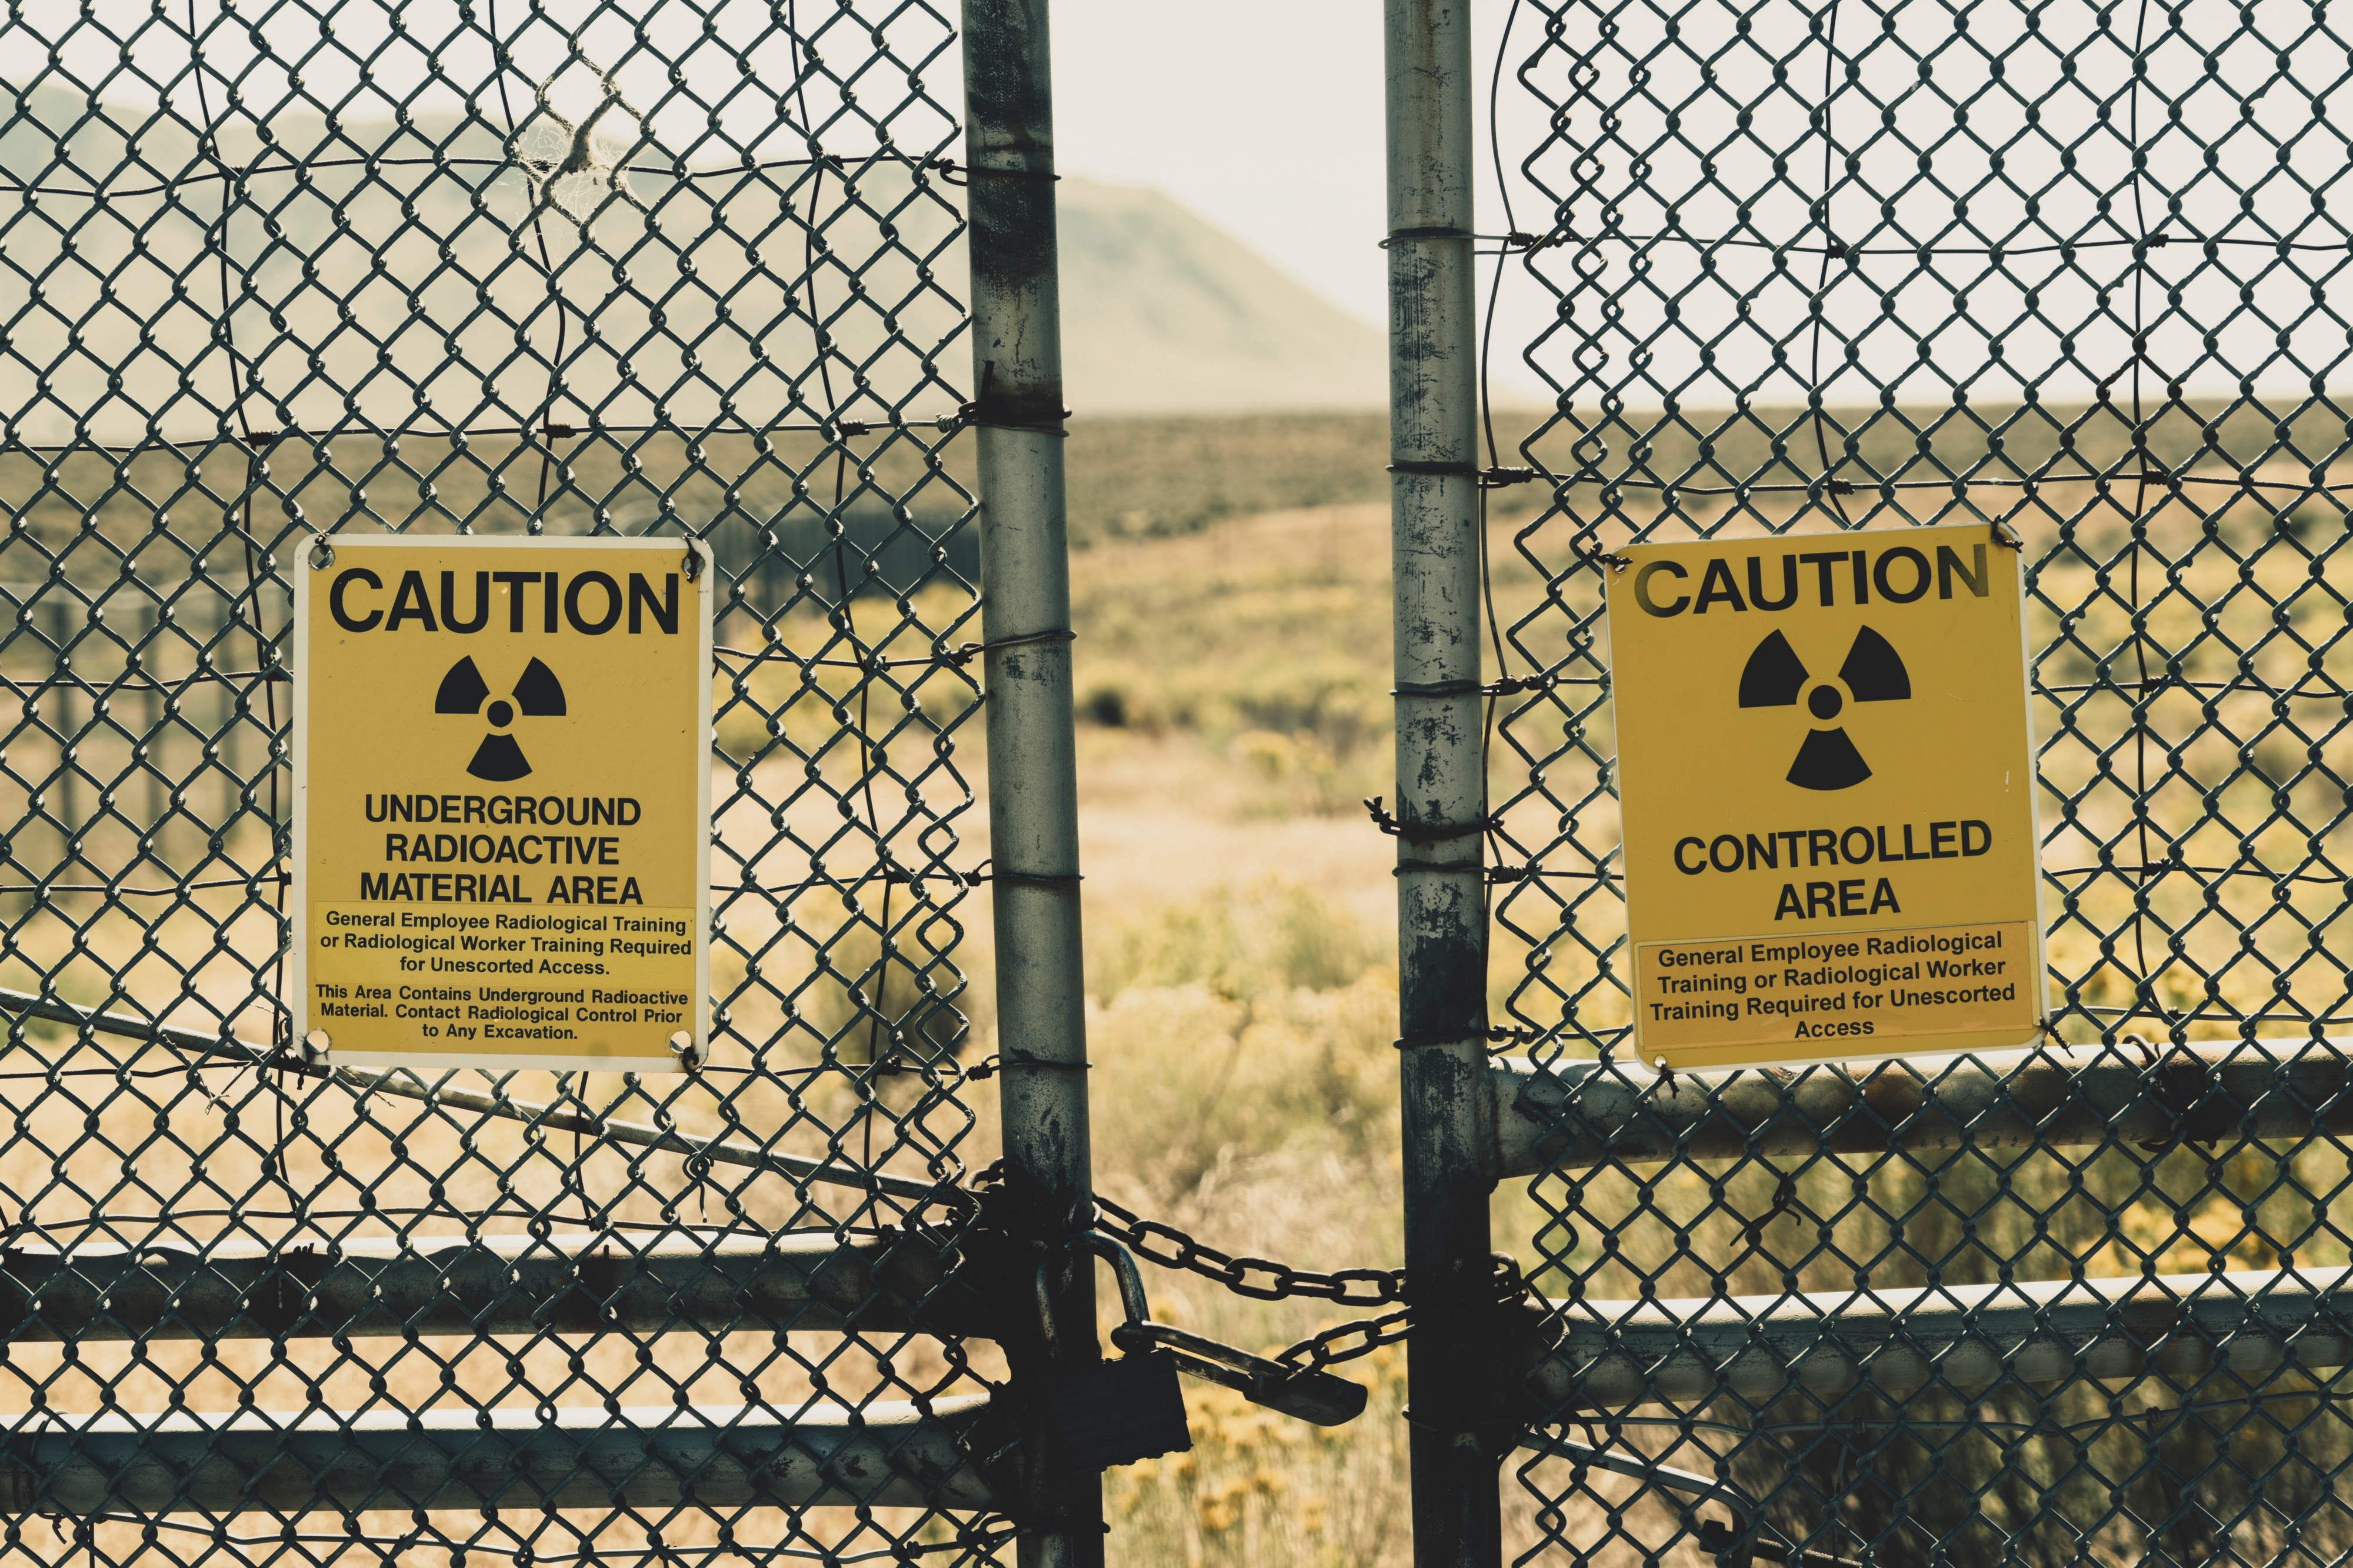 Chain link fence with yellow caution signs working about radioactivity